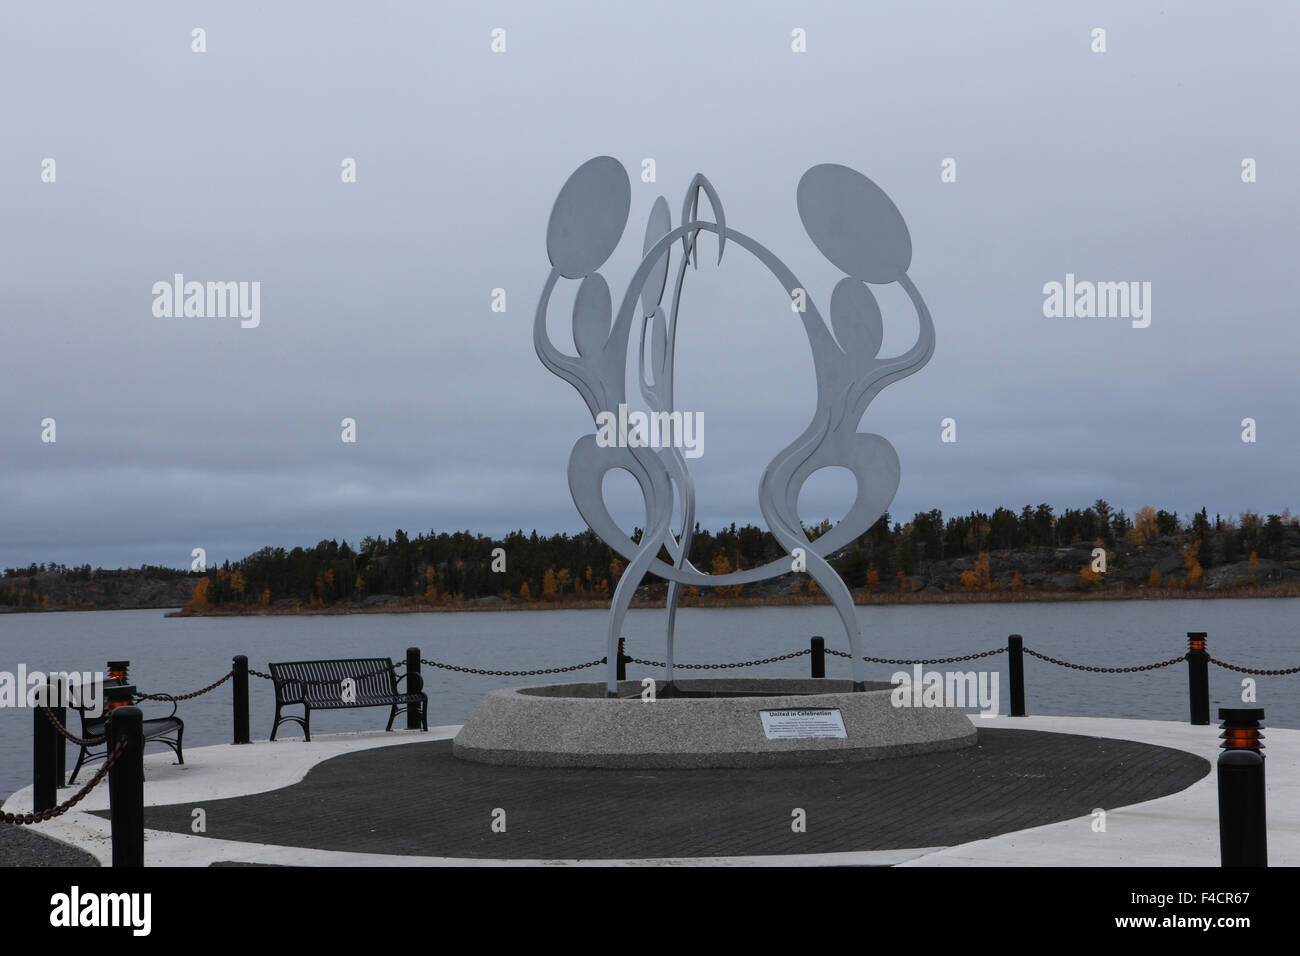 Sculptures in Yellowknife, Northwest Territories, Canada.  United in Celebration - Stock Image